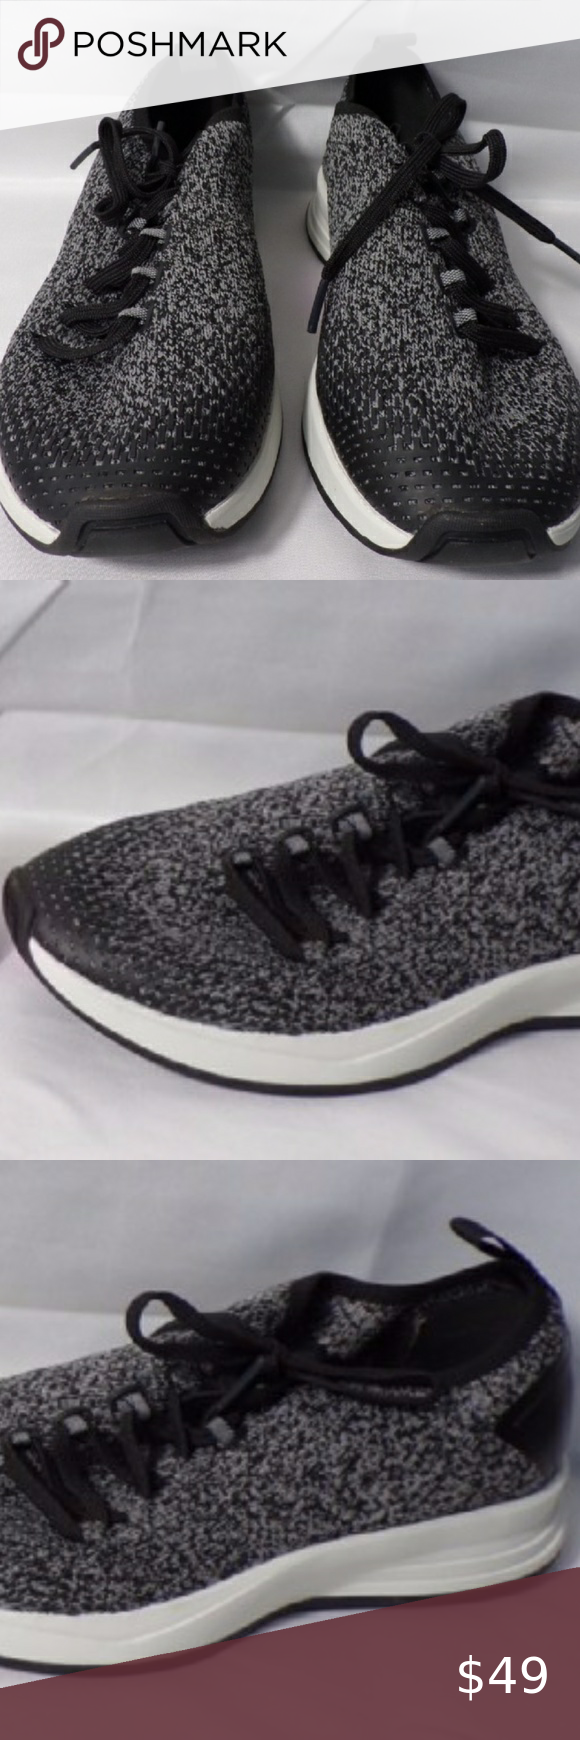 Under Armour SMGX Athletic Sneaker